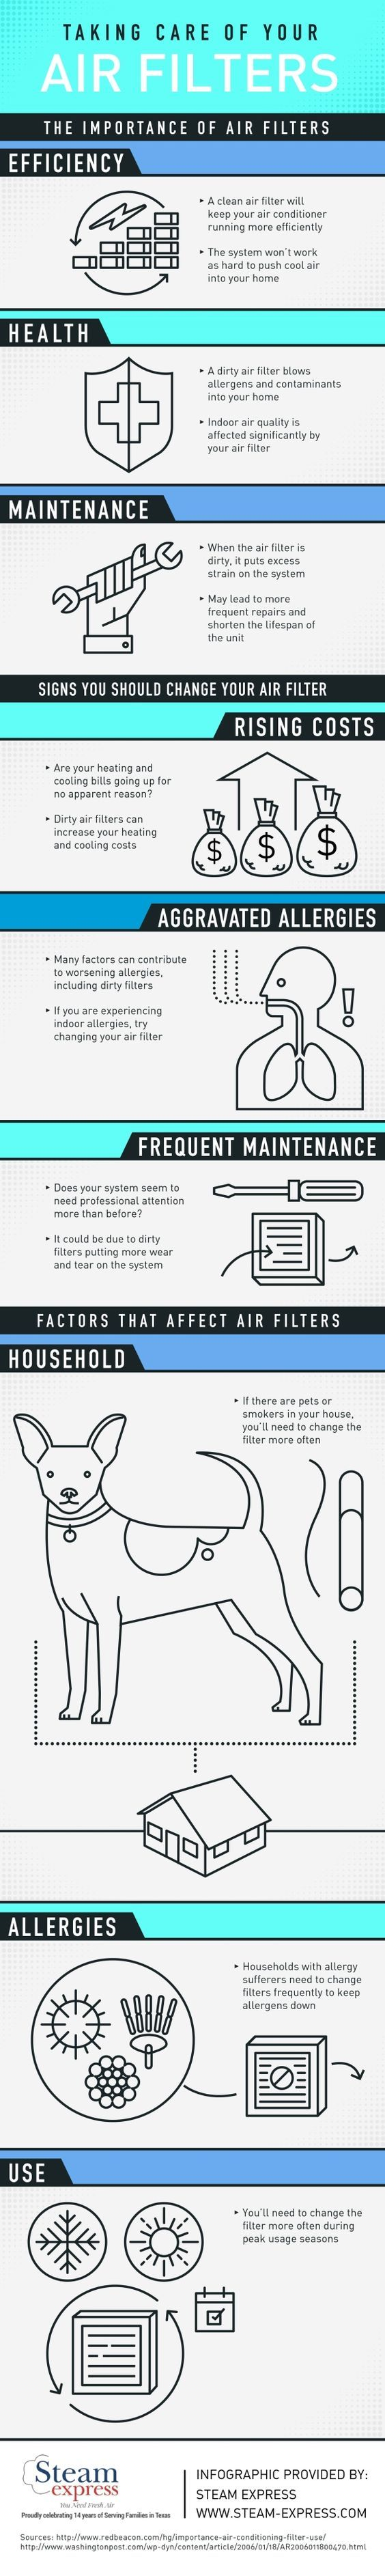 Best furnace air filters for allergies - Taking Care Of Your Air Filters Infographic Airfilters Comfortairzone Ac